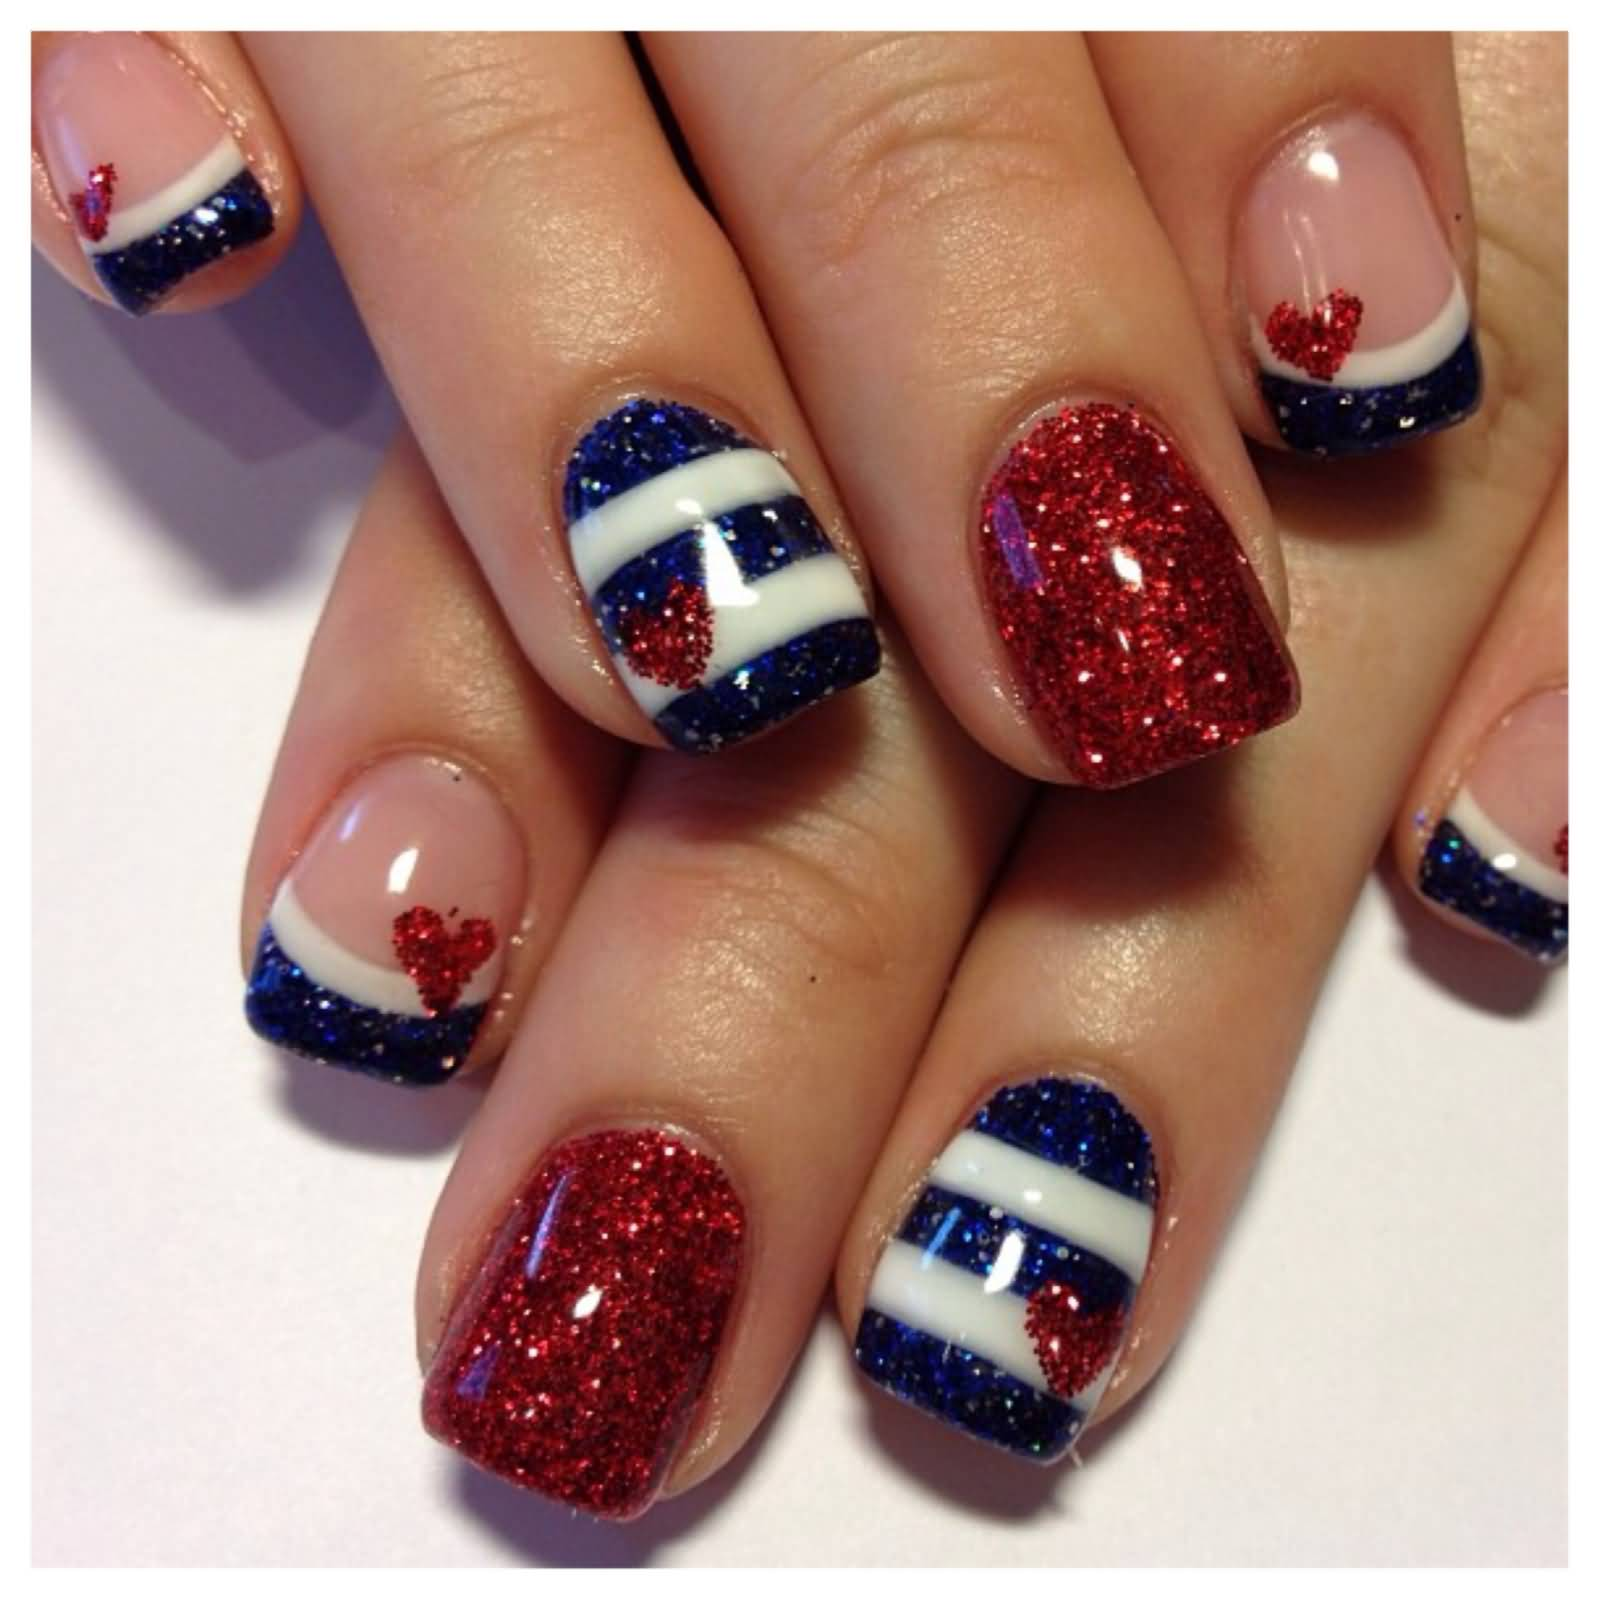 Nail Art In Blue And Red The Best Inspiration For Design And Color